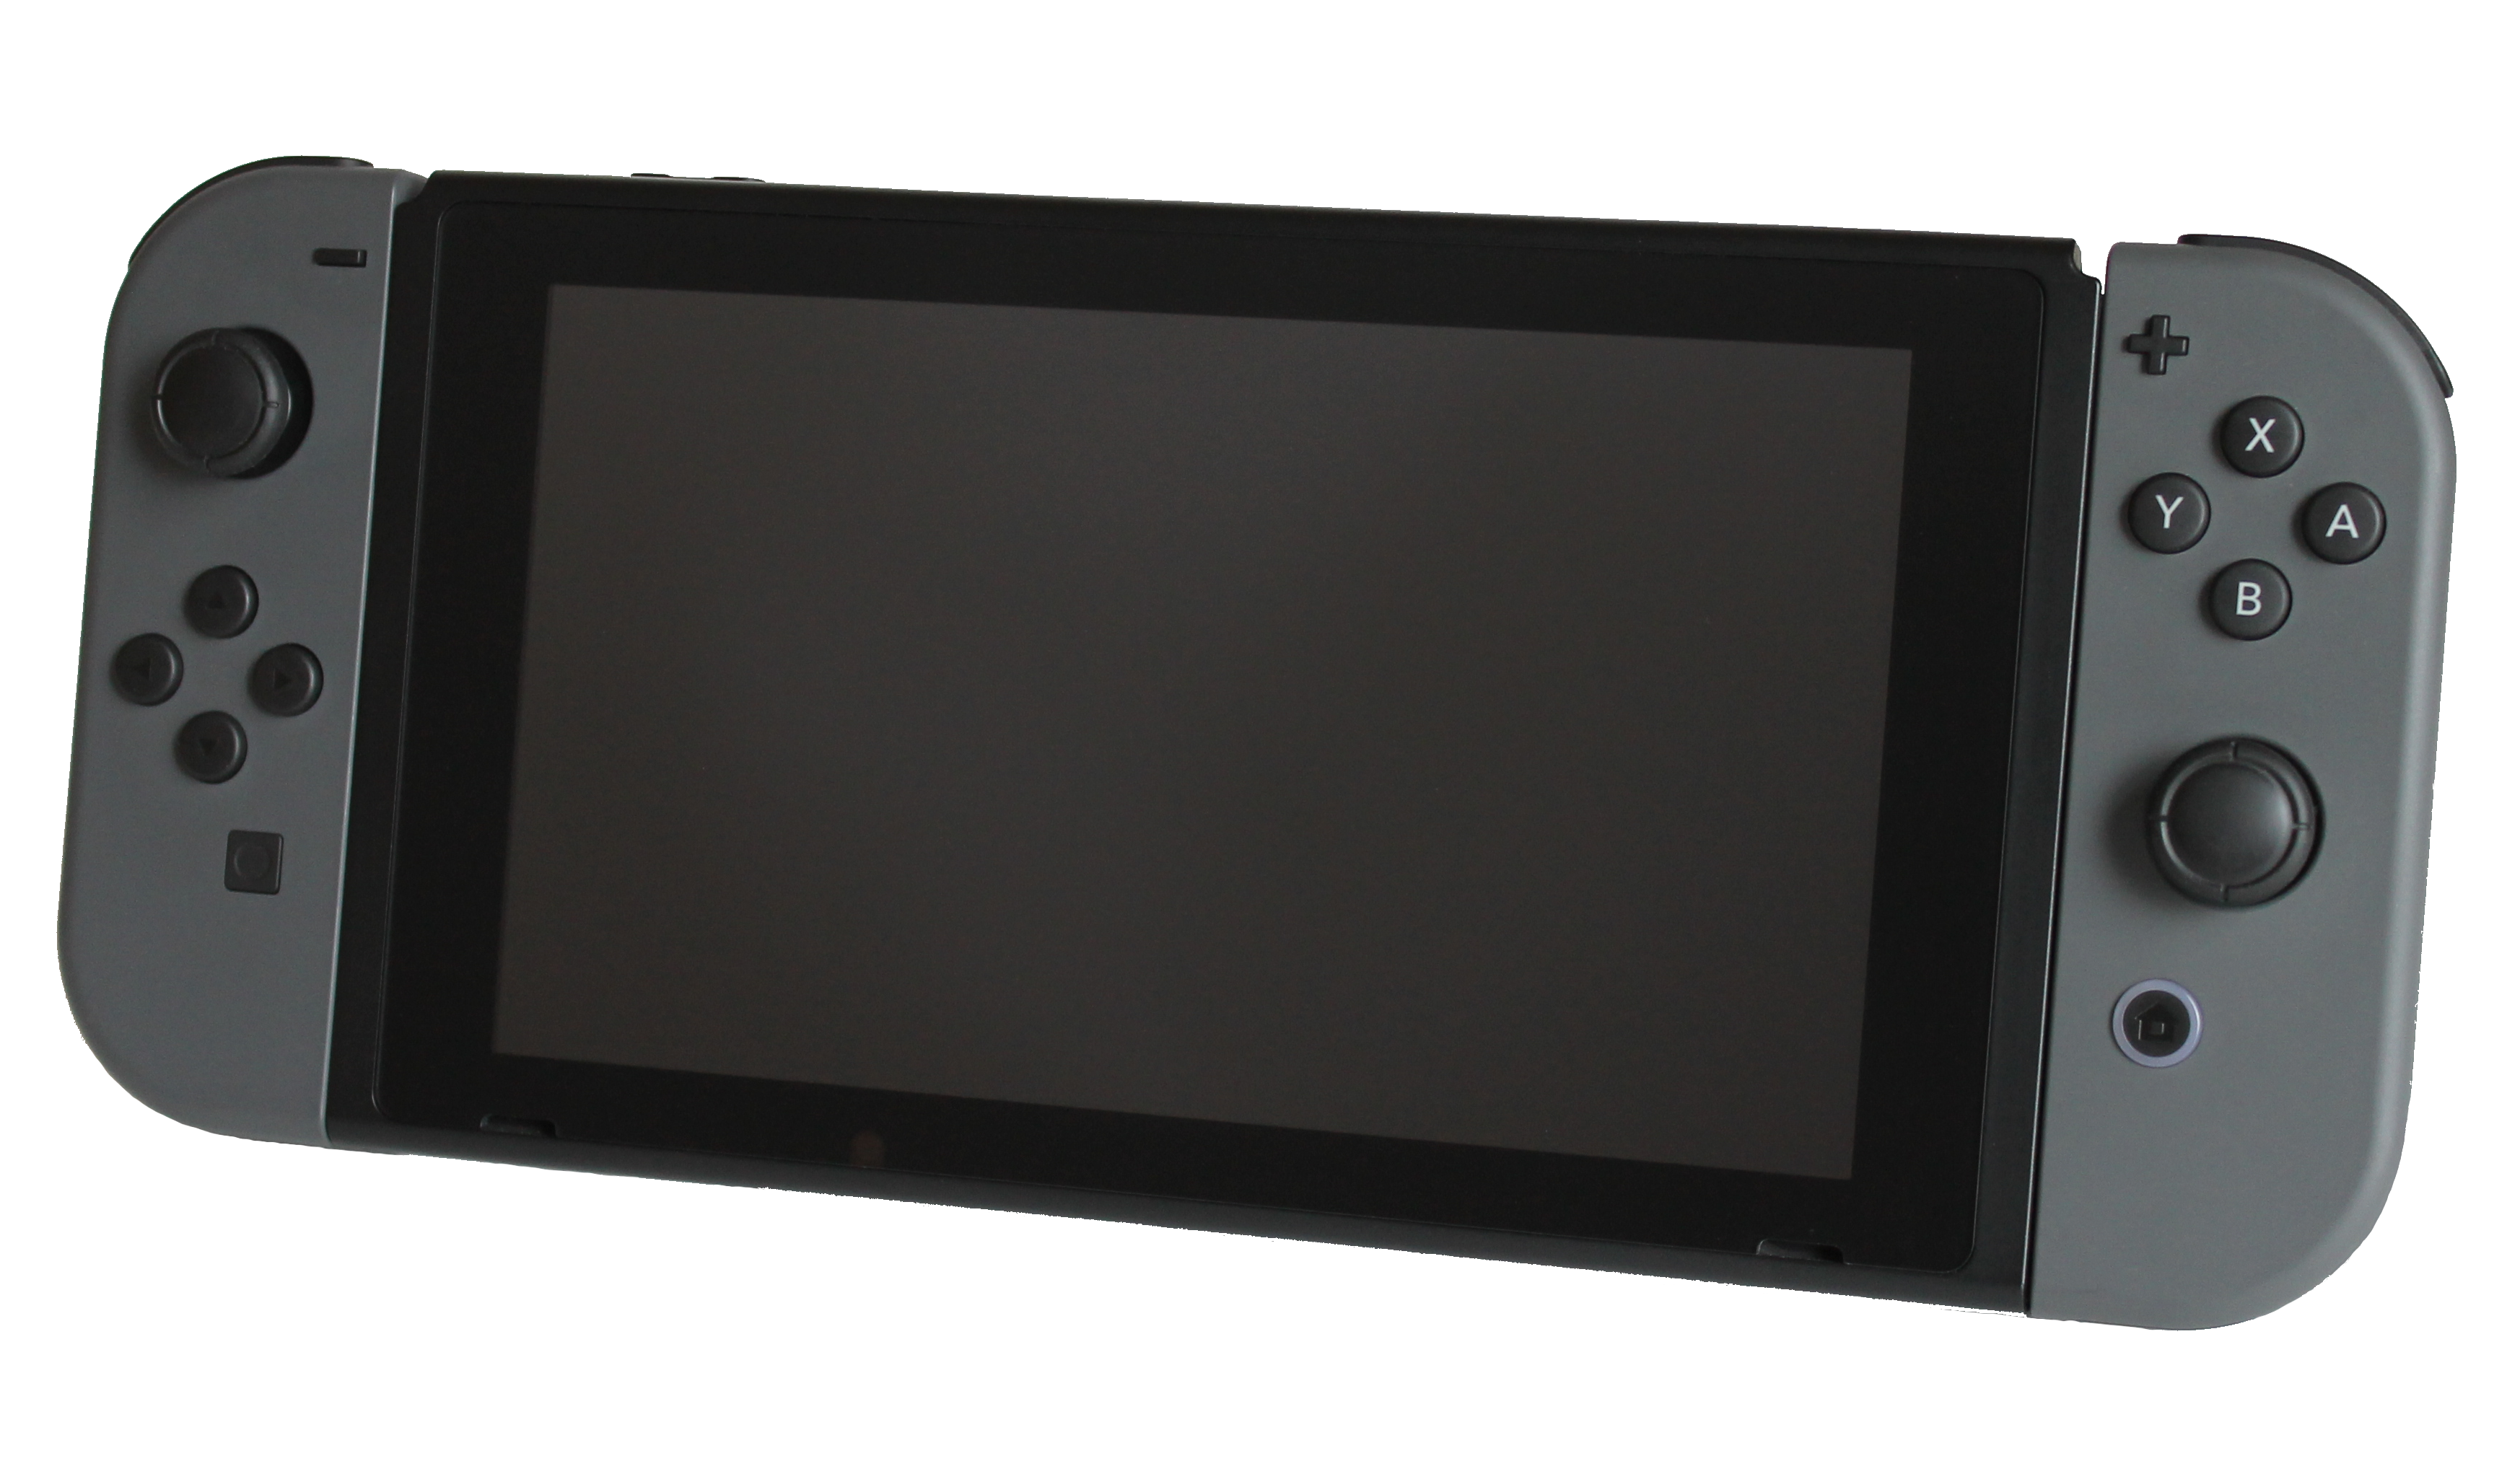 Nintendo switch png image. File portable wikimedia commons